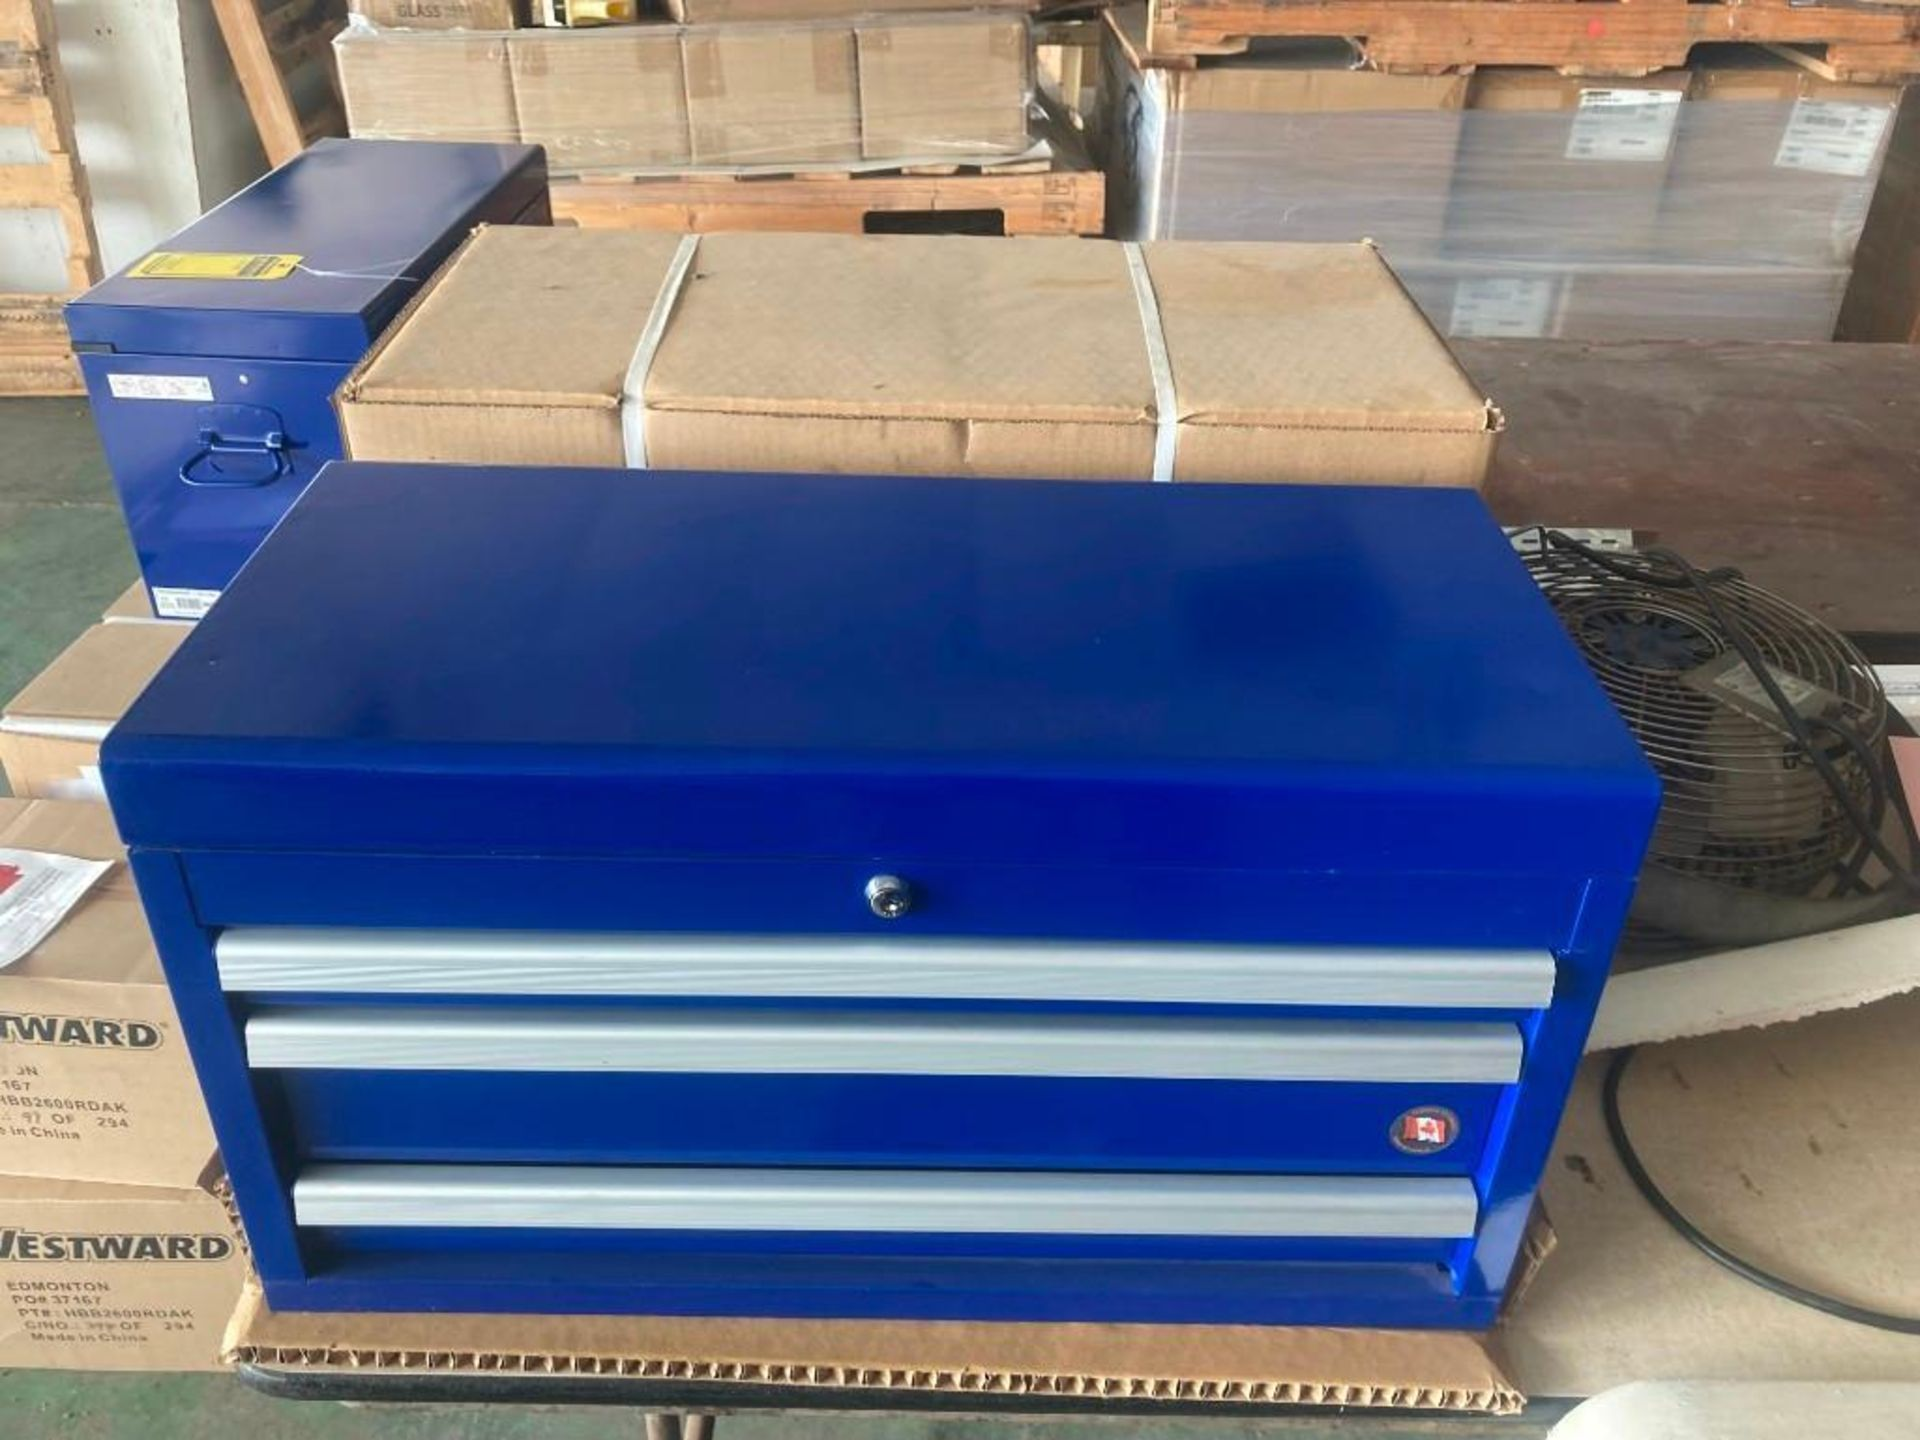 (2X) (NEW) INTERNATIONAL 3-DRAWER WORK SHOP TOP TOOL CHEST; 26'' X 12'' - Image 2 of 3